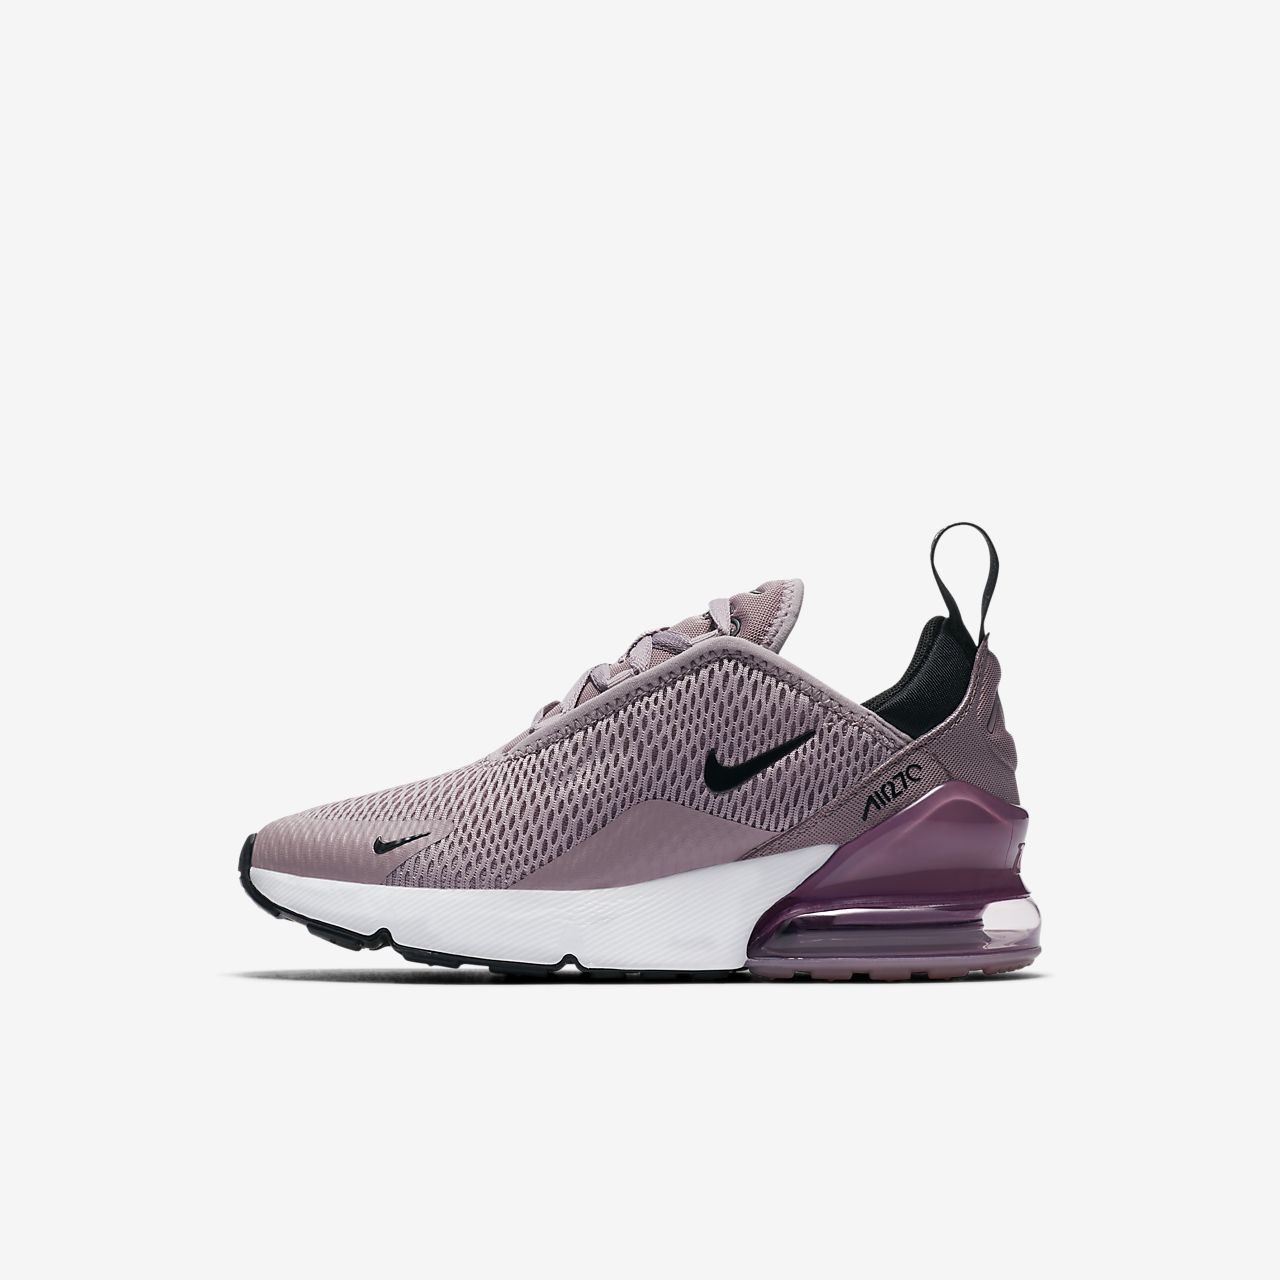 ... Nike Air Max 270 Little Kids' Shoe